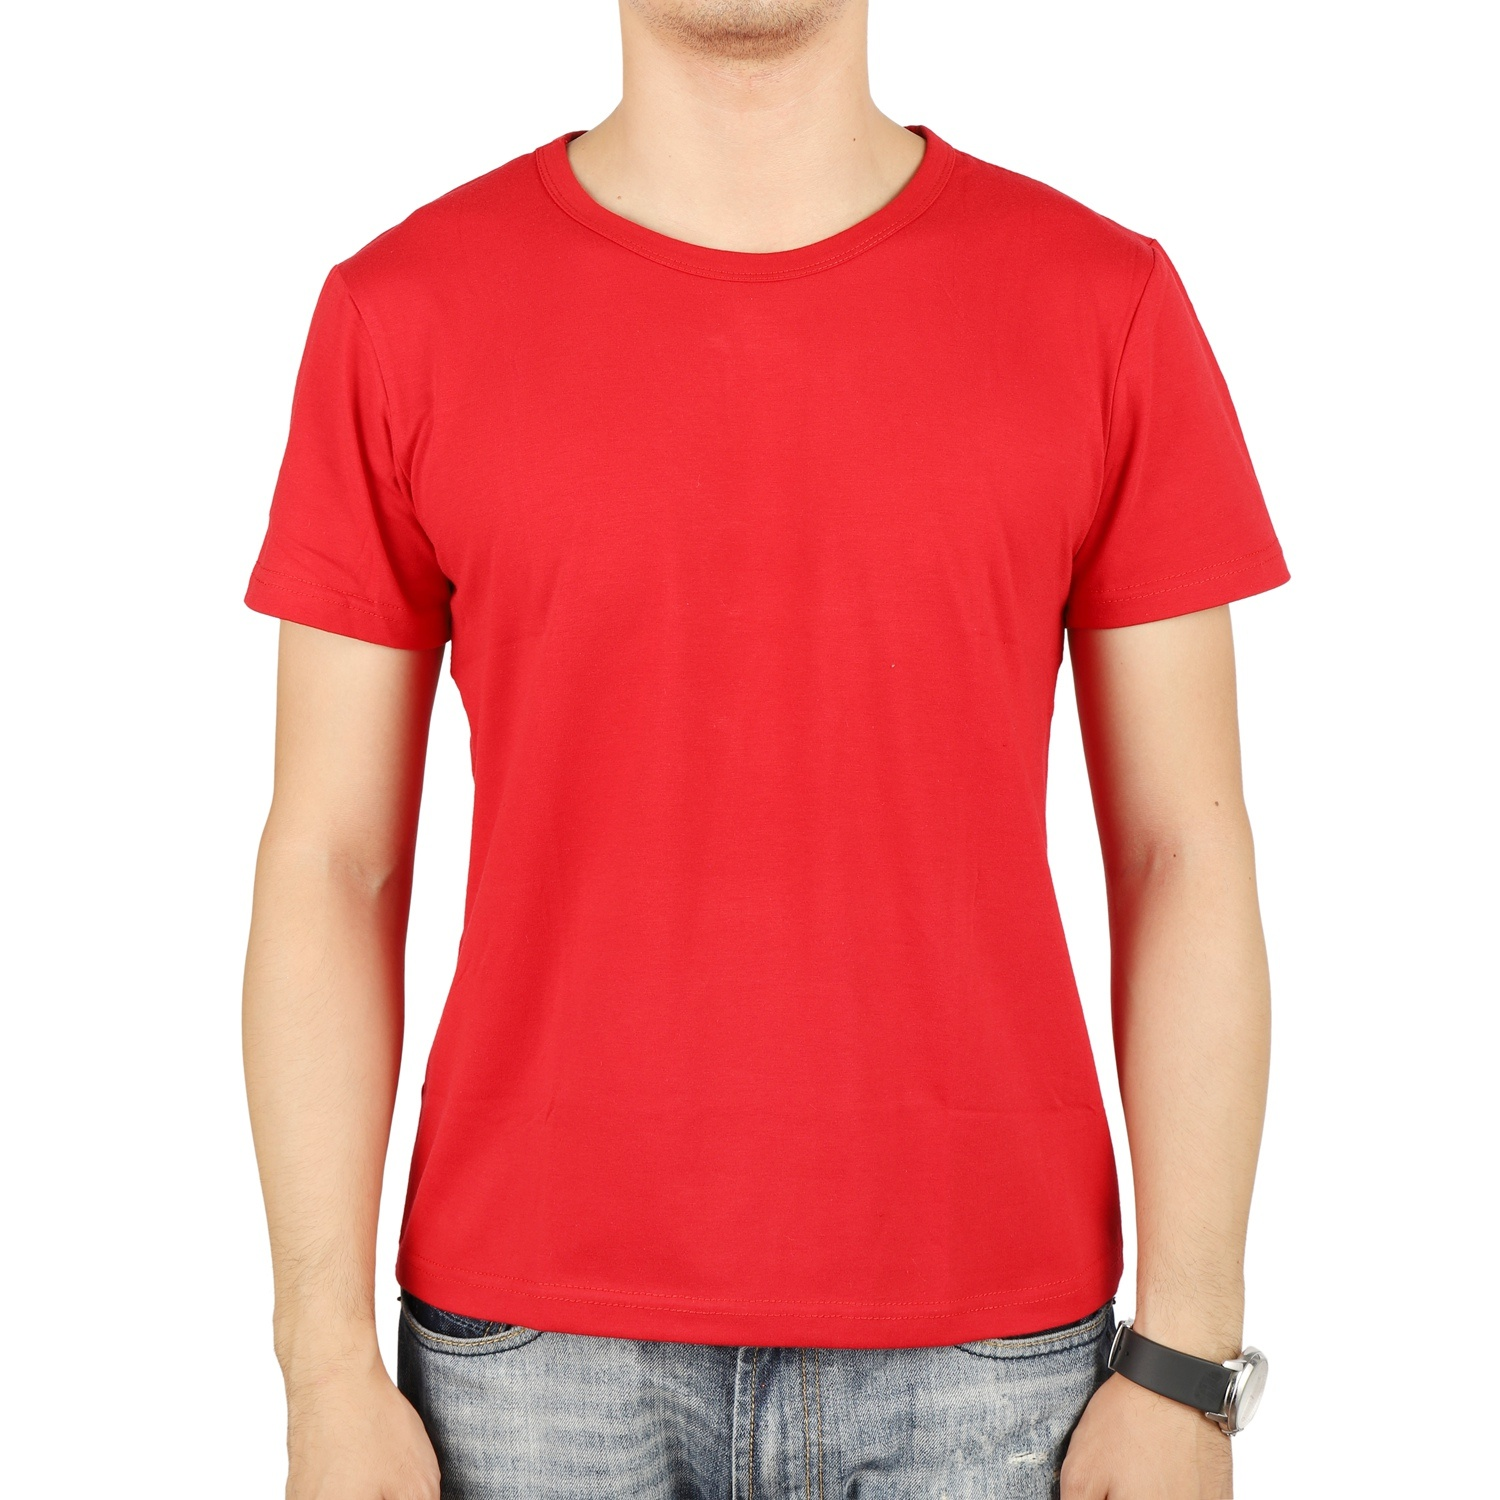 Wholesale Transfer T Shirt Buy Reliable Transfer T Shirt From